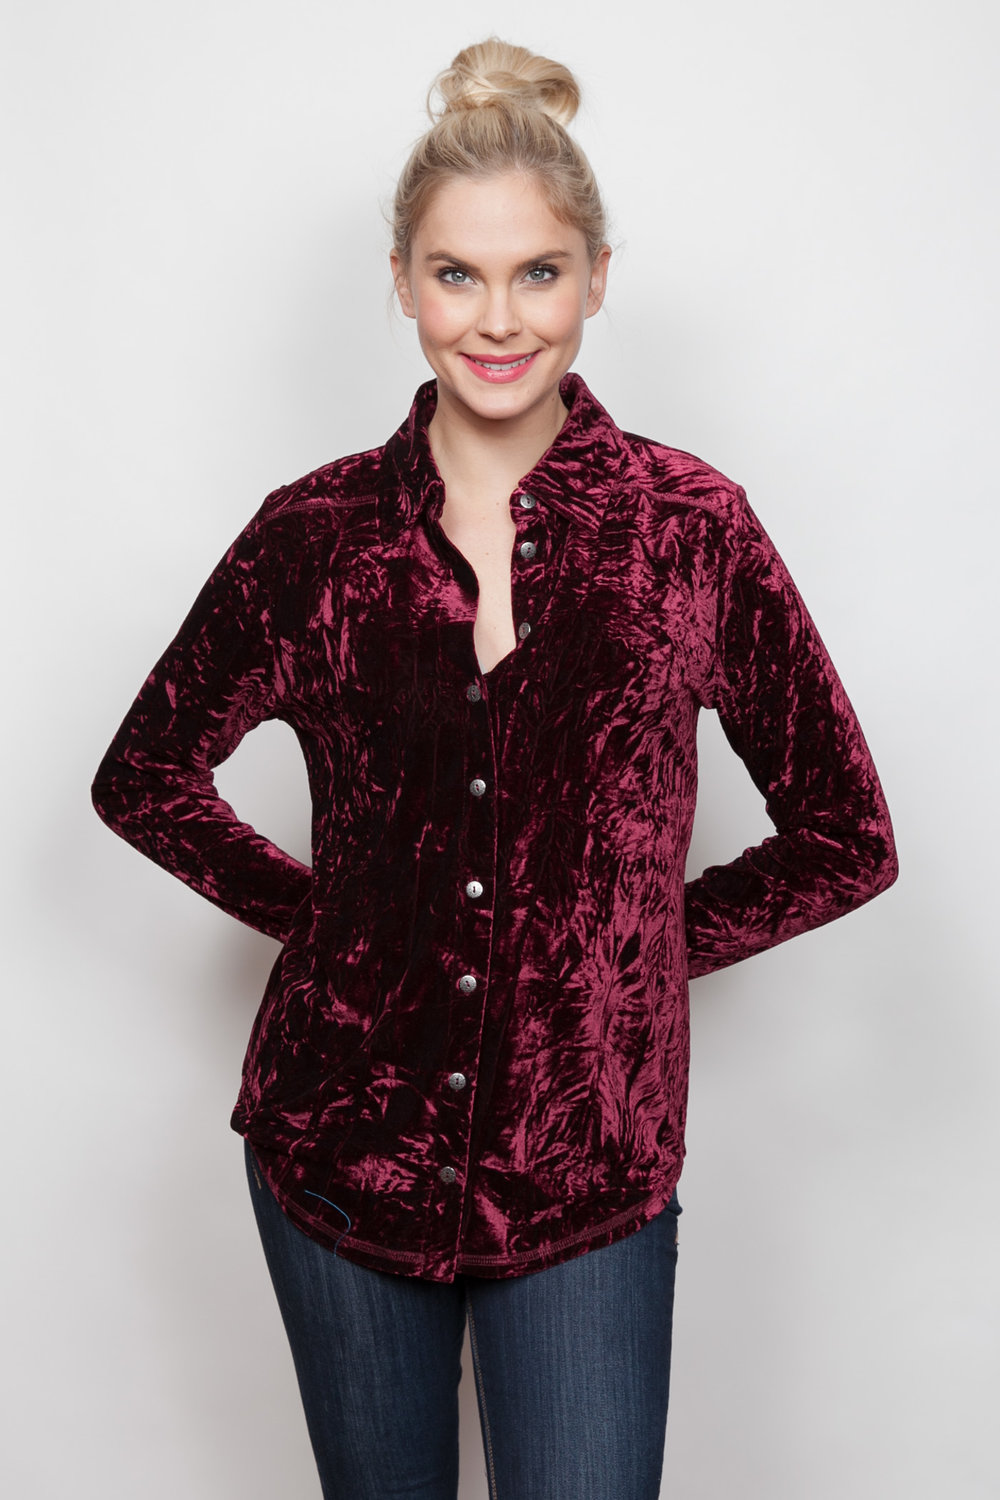 Copy of Style # 15379-18, p 12 </br>Crinkled Crushed Velvet </br>Color: Merlot + Black, Sapphire